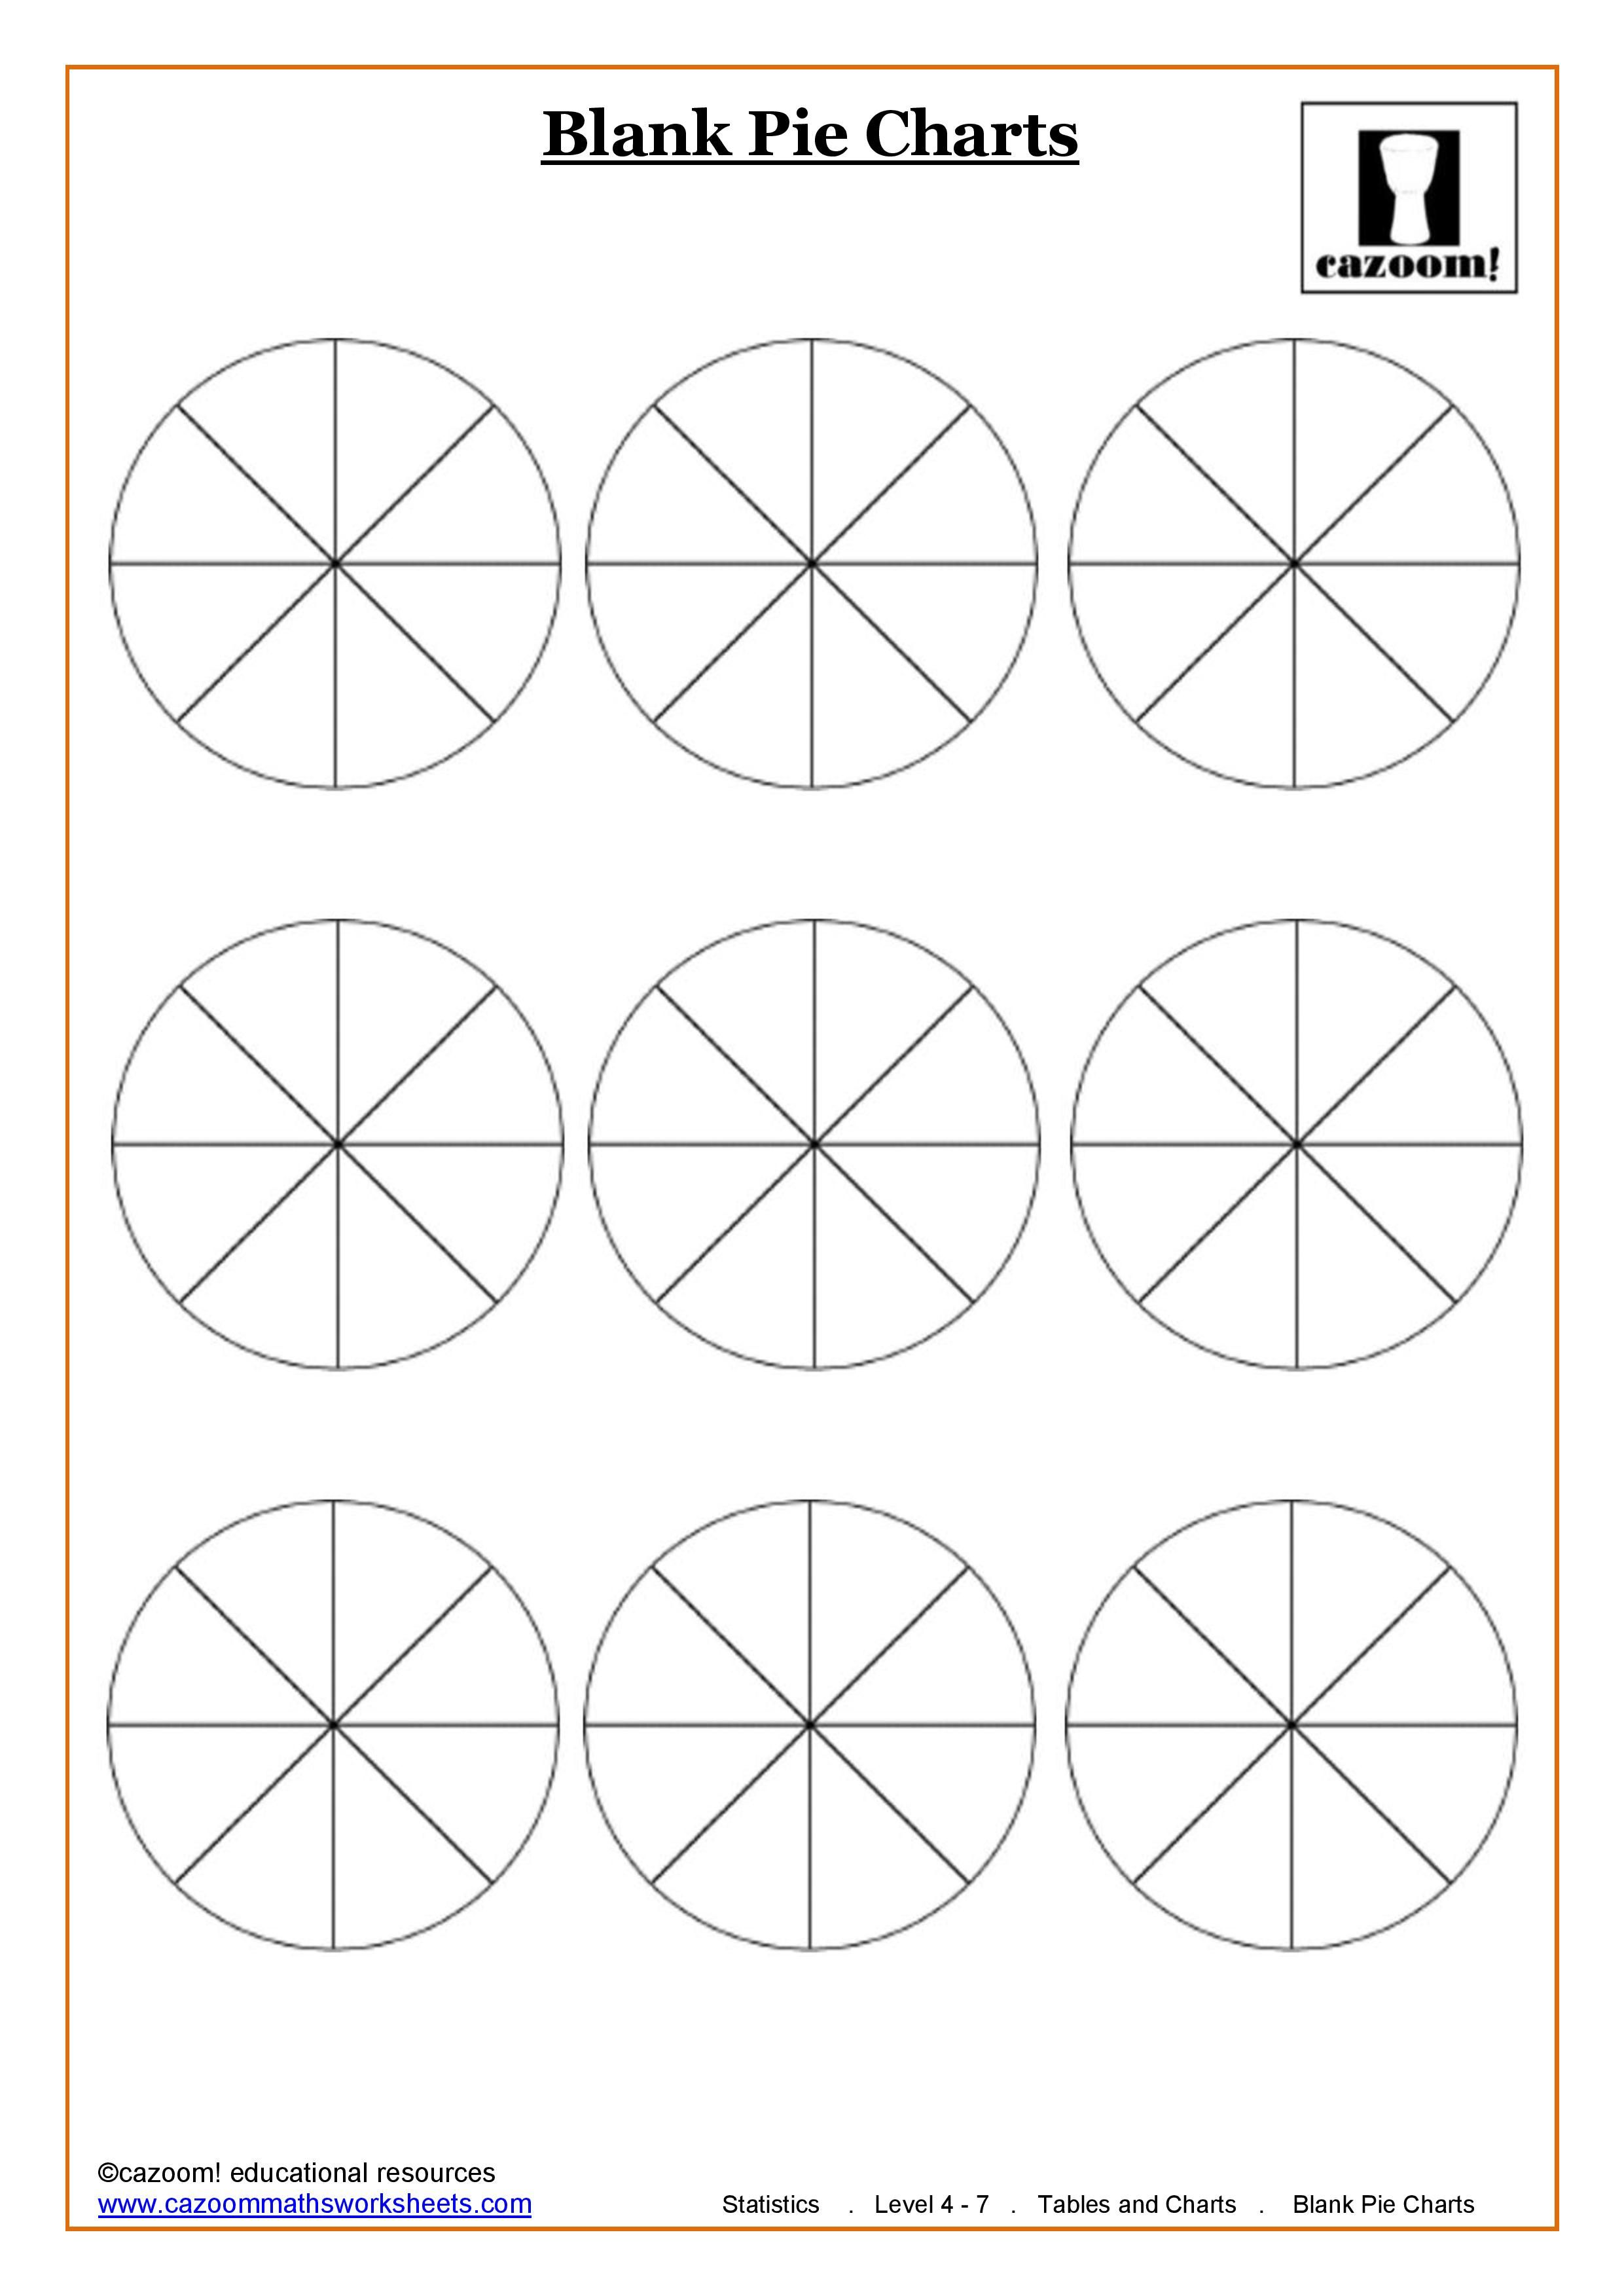 Blank pie charts 8 sections homework pinterest pie charts blank pie charts 8 sections nvjuhfo Choice Image